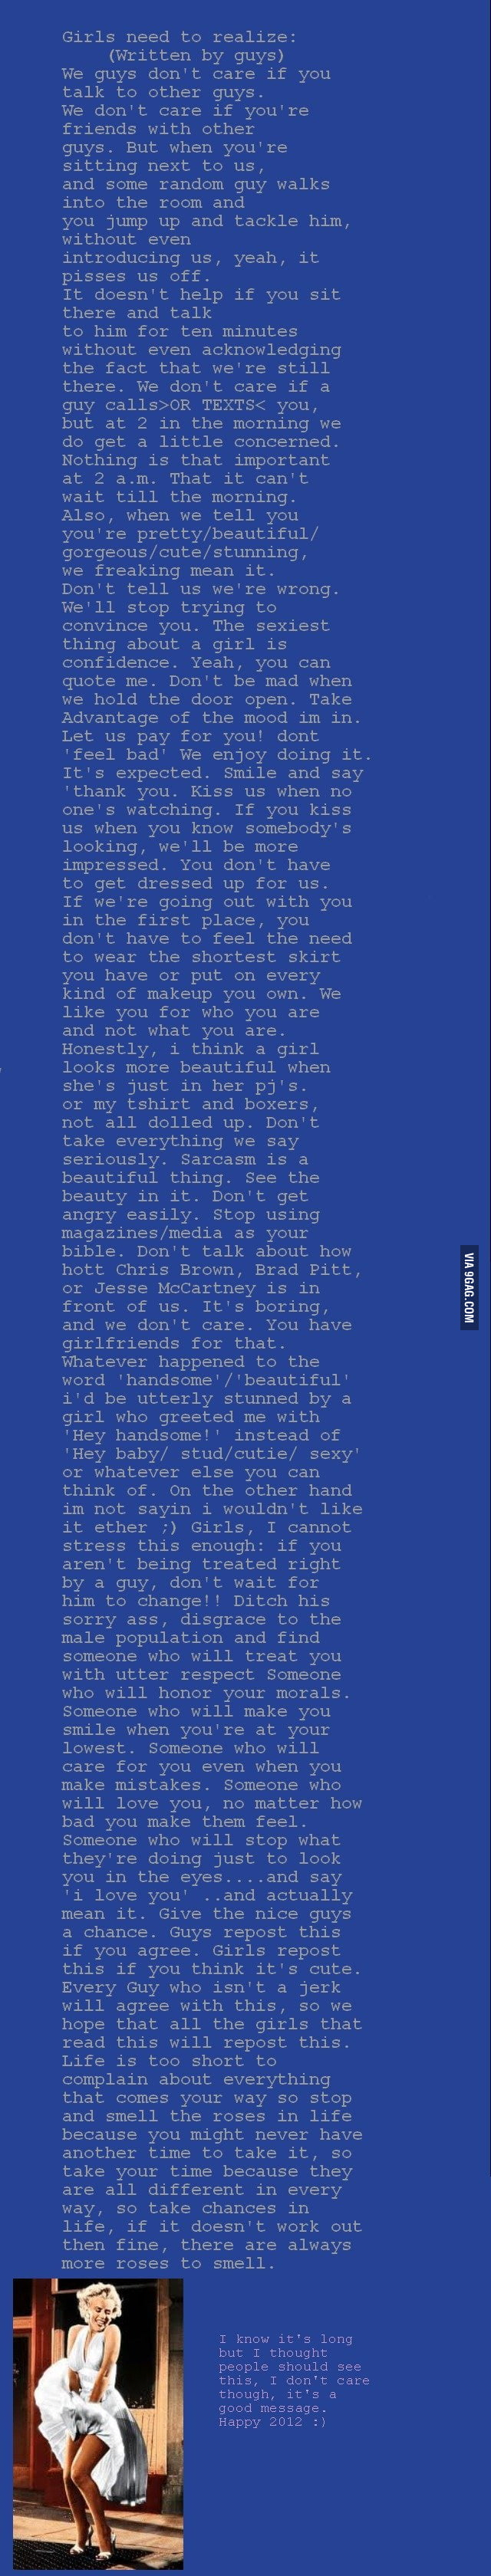 Sincerely, nice guys